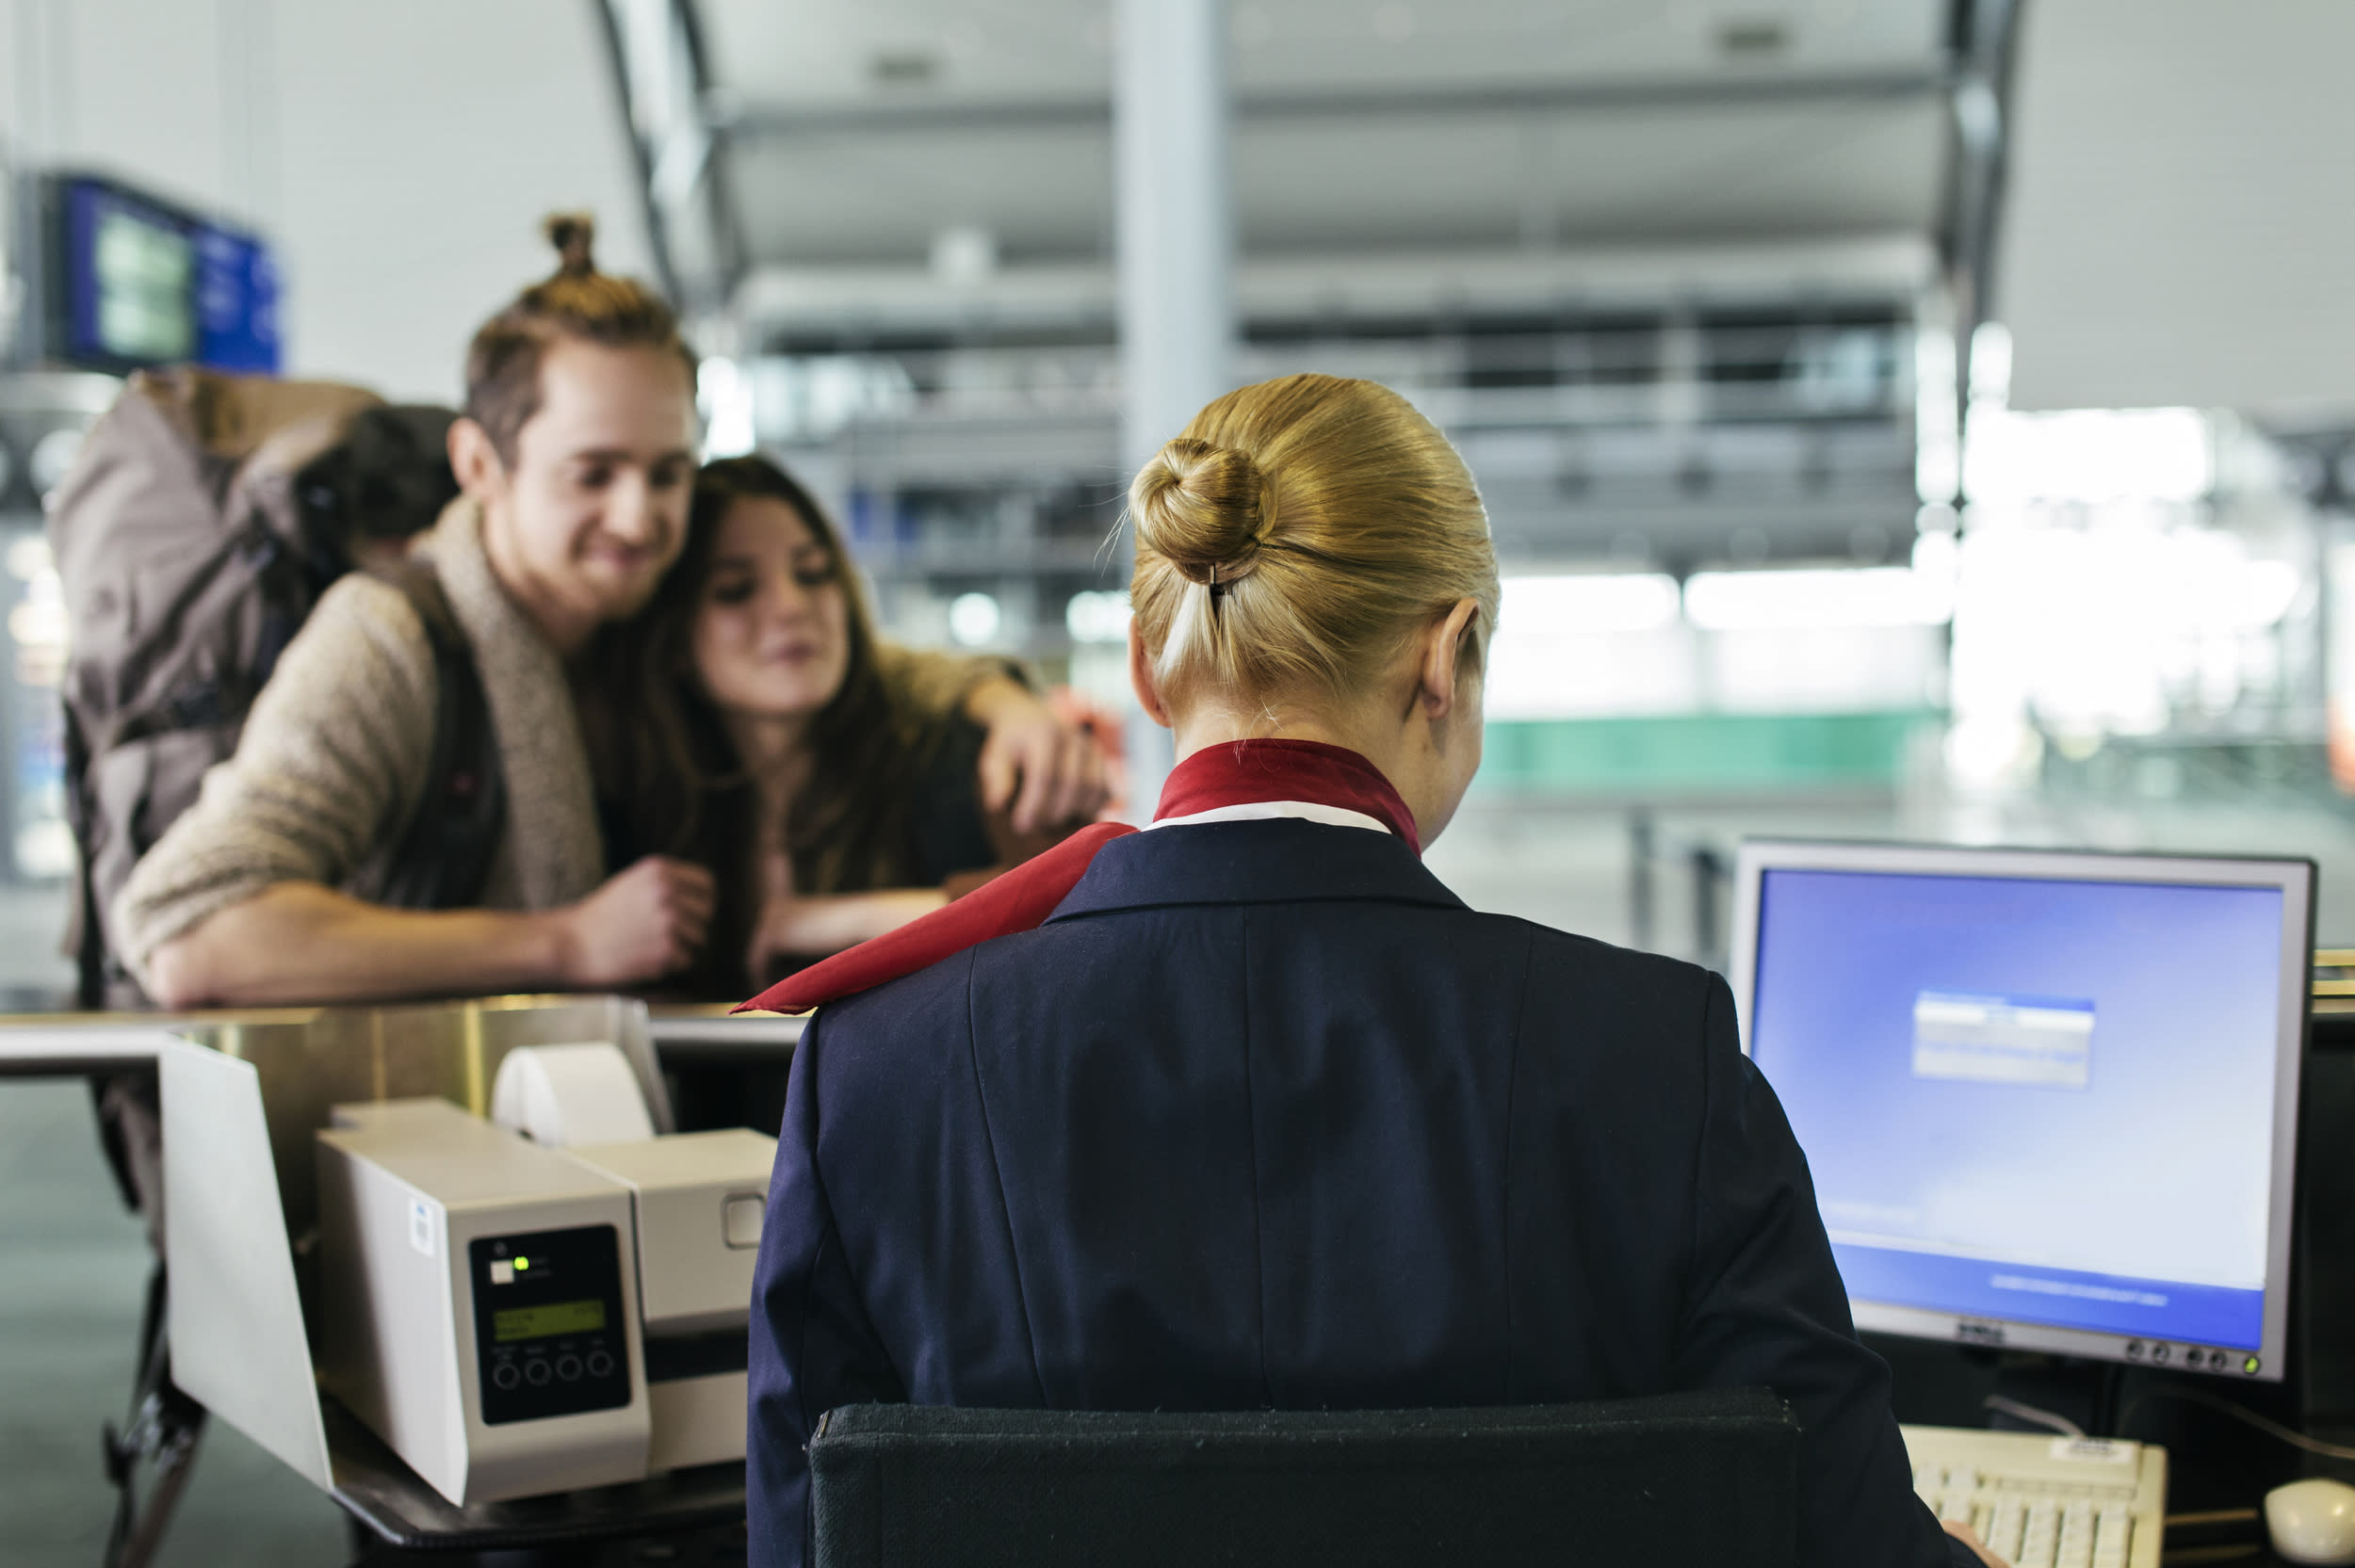 """<p>Forgot to check in online? If you're flying with <a href=""""http://www.ryanair.com/gb/en/useful-info/help-centre/fees"""" target=""""_blank"""">Ryanair</a> it will cost you to check in at the airport unless you're a Business Plus passenger. The no-frills carrier has a £45 airport check-in fee, meaning you could end up forking out the amount you spent on your cheap flight if you don't remember to check in before reaching the airport. And if you think that's ridiculous, the fee was £70 before Ryanair reduced it in a bid to improve its image. Travellers flying with <a href=""""http://wizzair.com/en-gb/information-and-services/prices-discounts/all-services-fees#/"""" target=""""_blank"""">Wizzair</a> are also charged a check-in fee of £26.50 at the airport, while <a href=""""http://www.jet2.com/faqs/check-in-mobile/#gsc.tab=0"""" target=""""_blank"""">Jet2.com</a> passengers pay £17.50.</p>"""